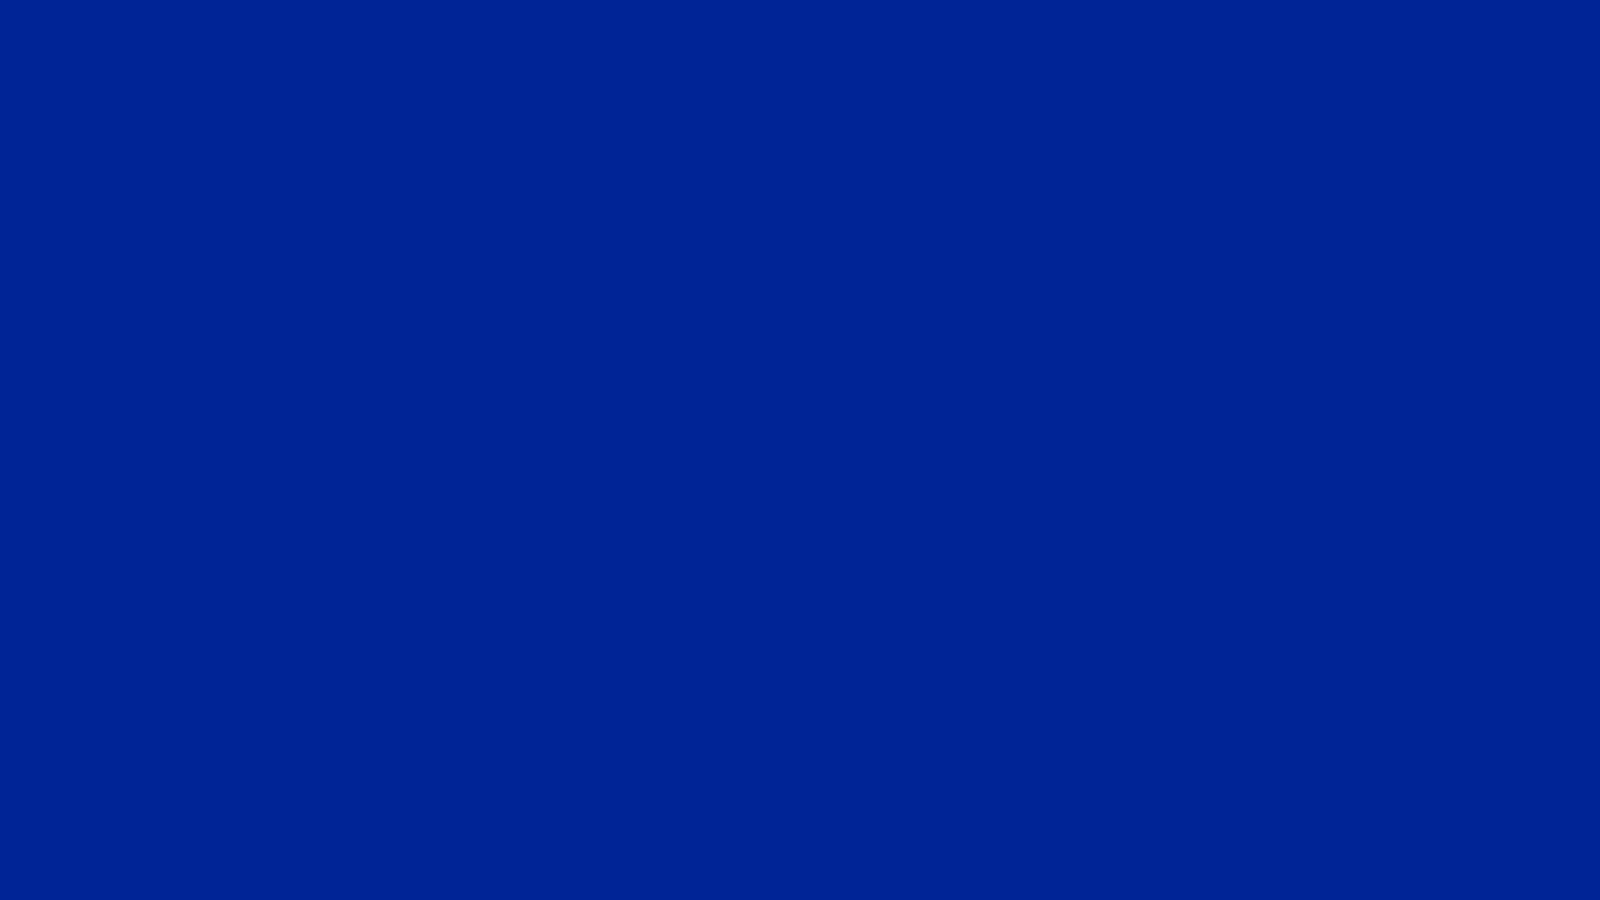 1600x900 Imperial Blue Solid Color Background